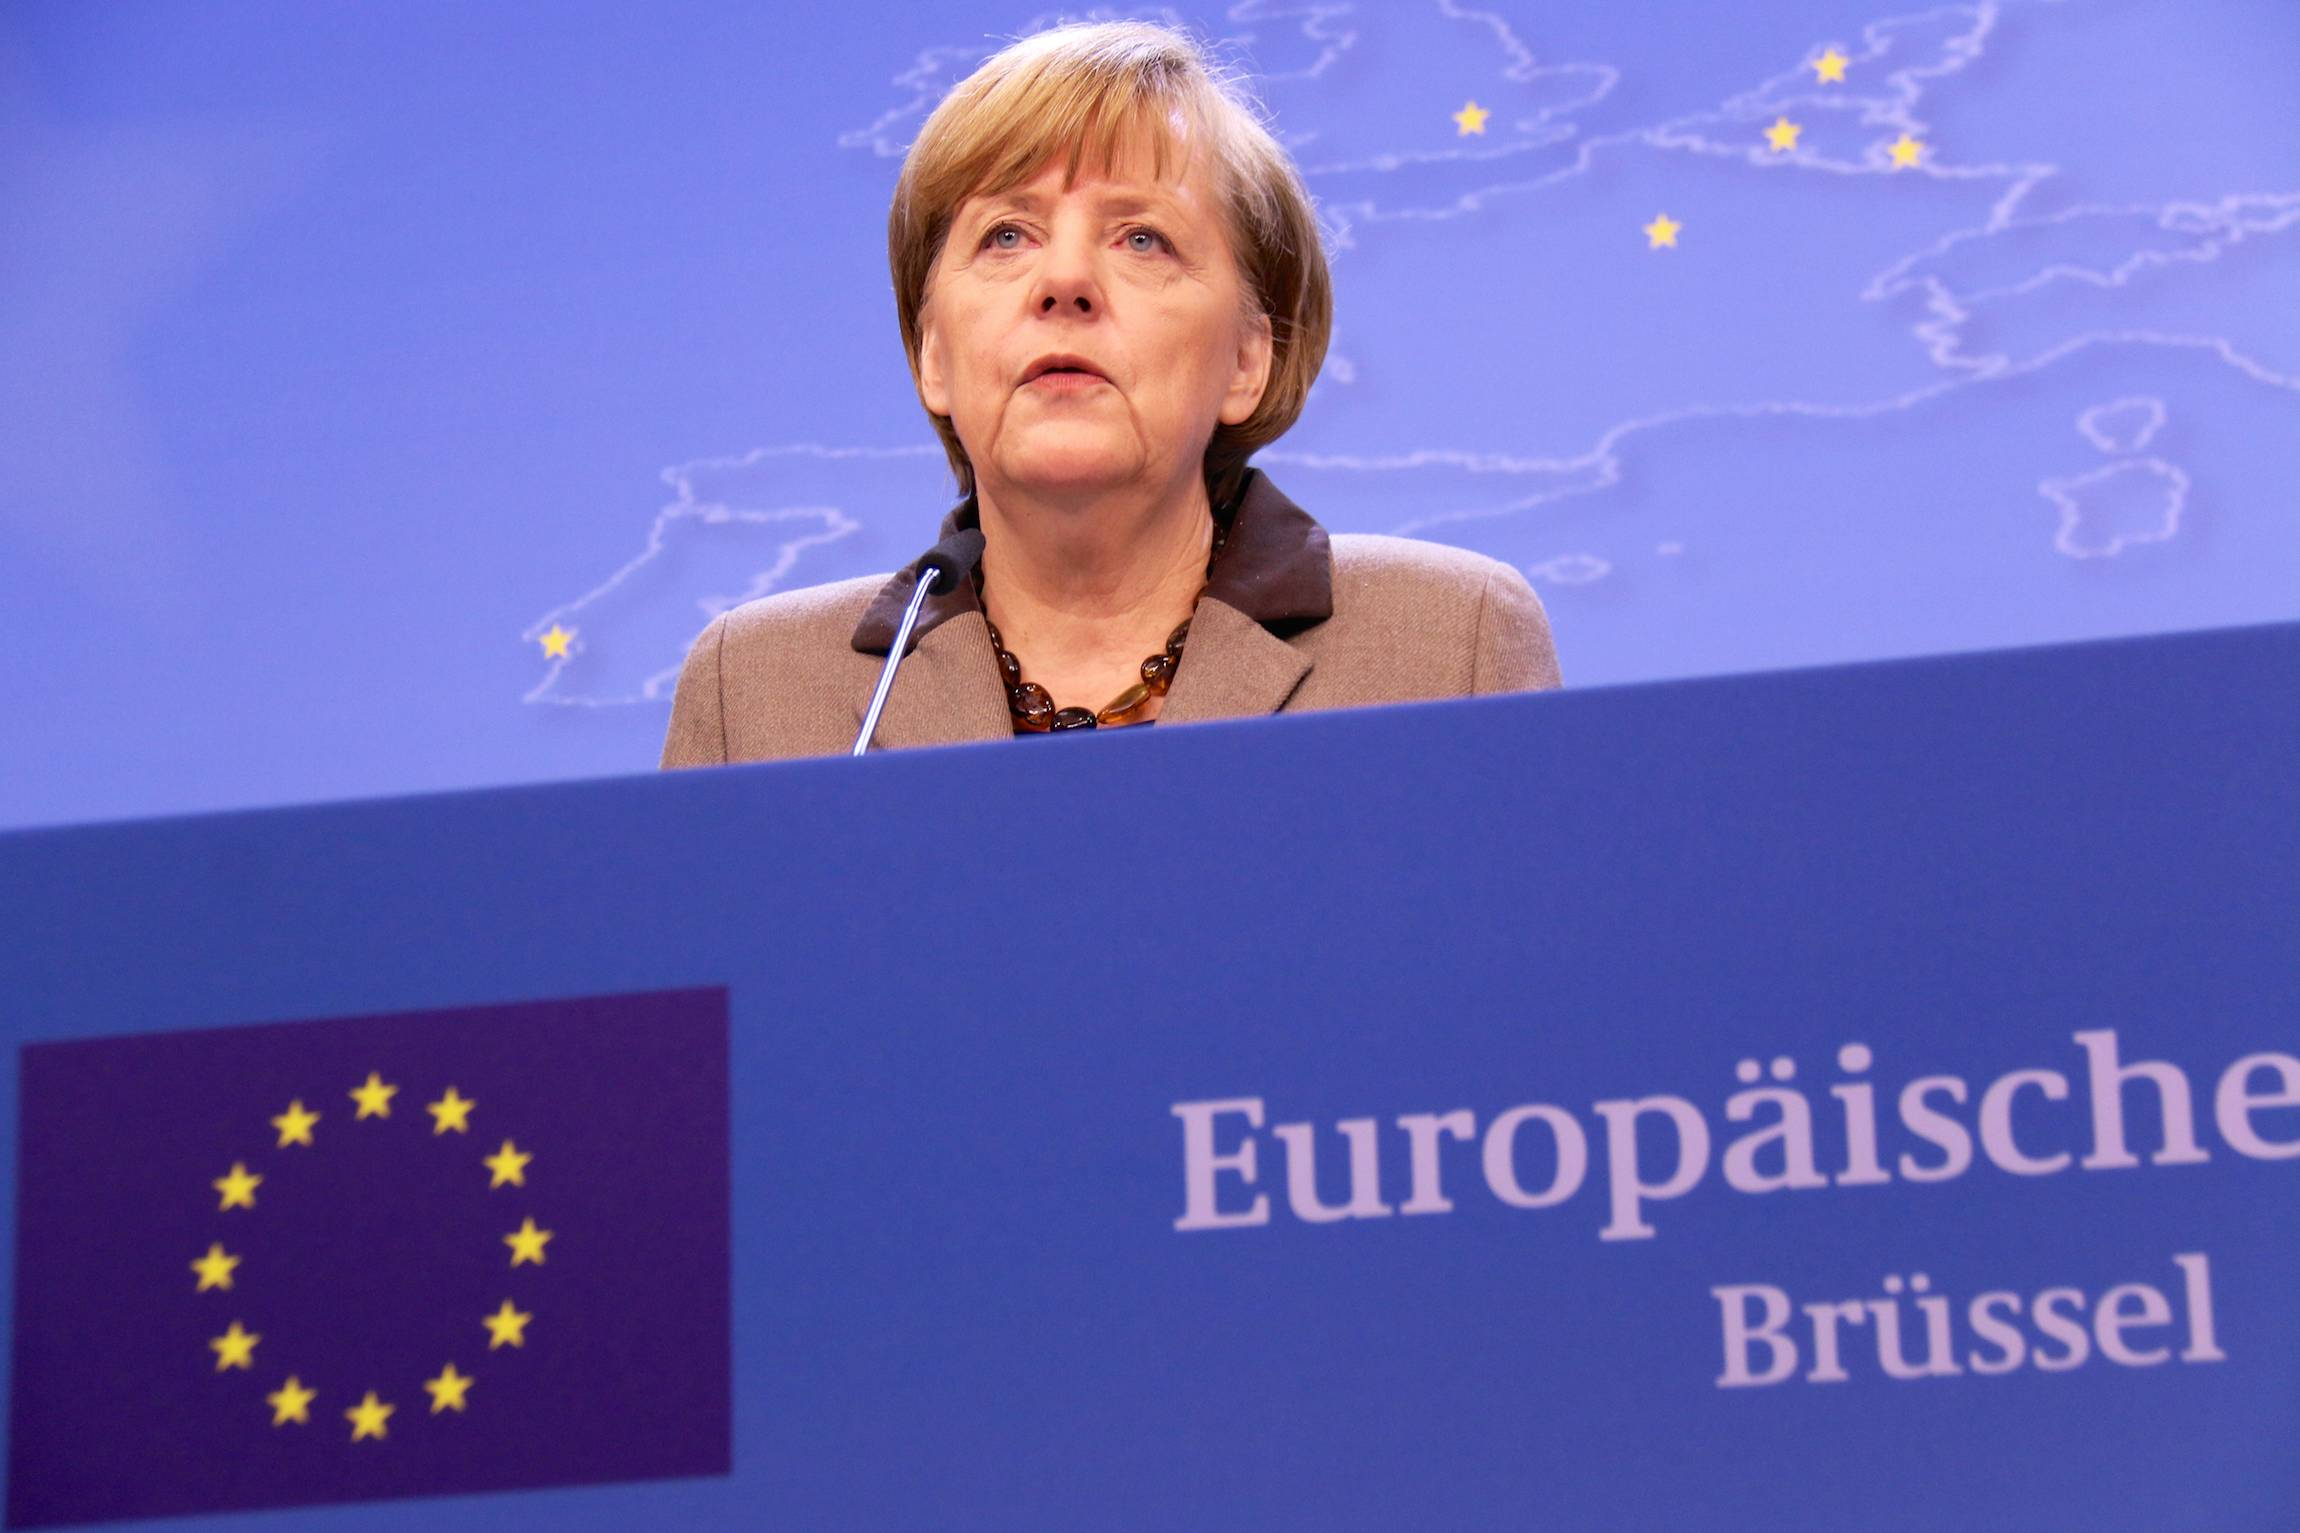 German Chancellor Angela Merkel speaks after the European Council in Brussels, March 21, 2014.